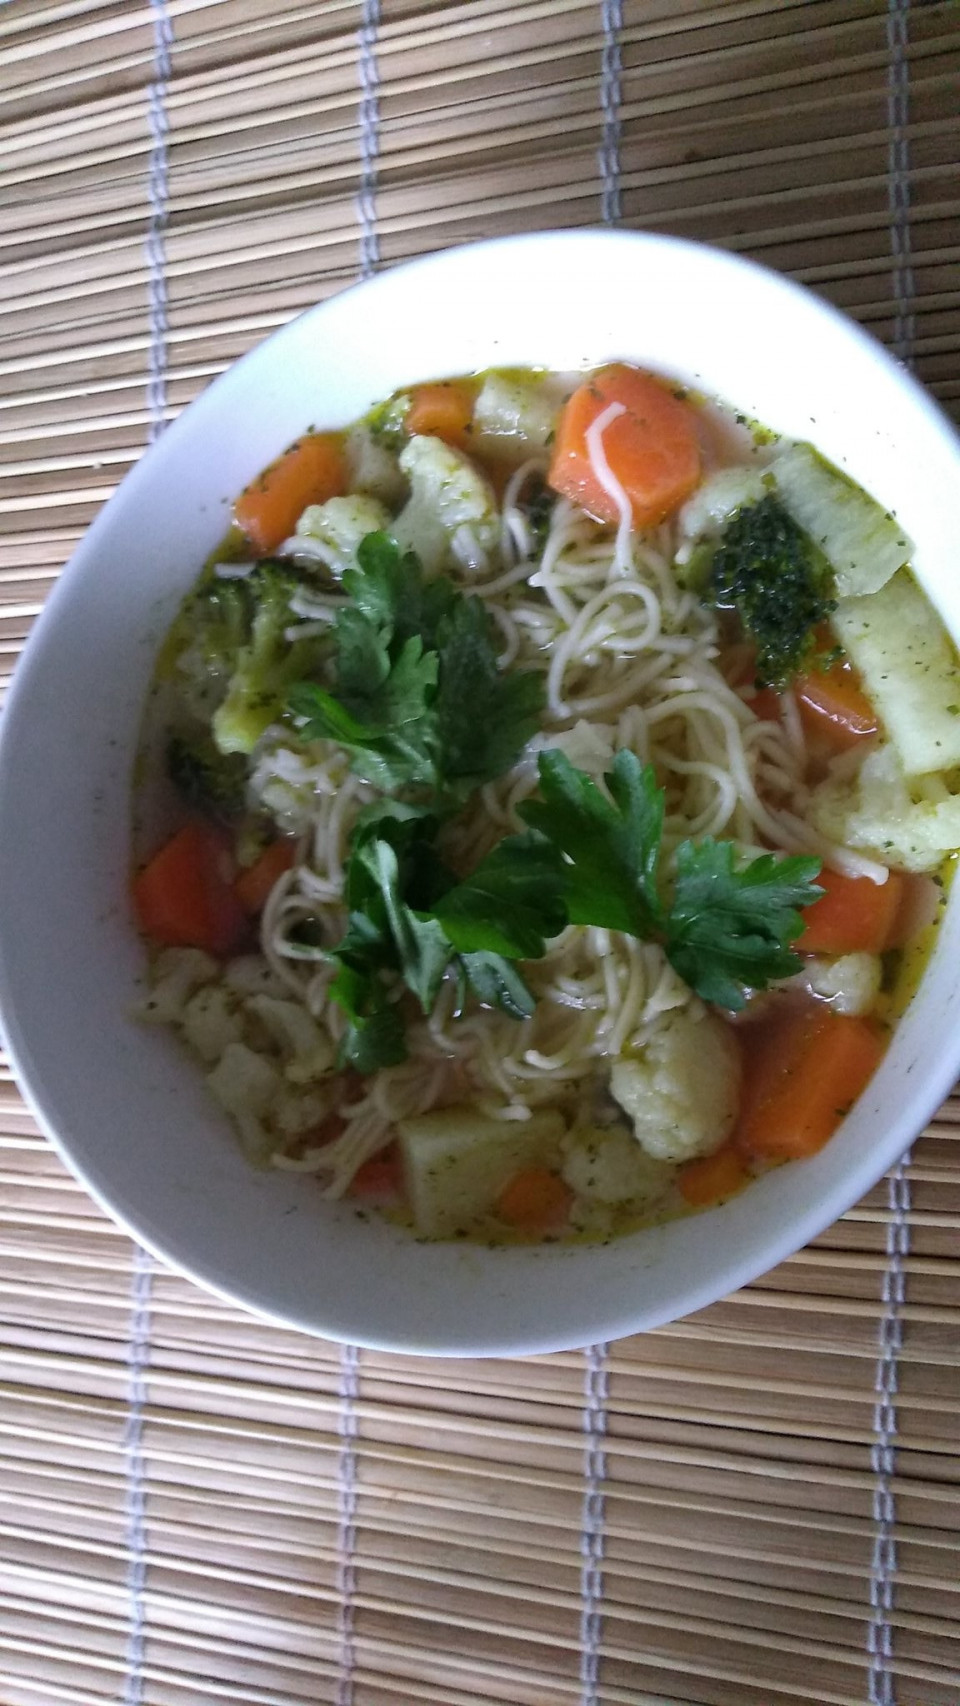 Fresh home made vegetables soup with cauliflower, carrots, kohlrabi, broccoli and noodles